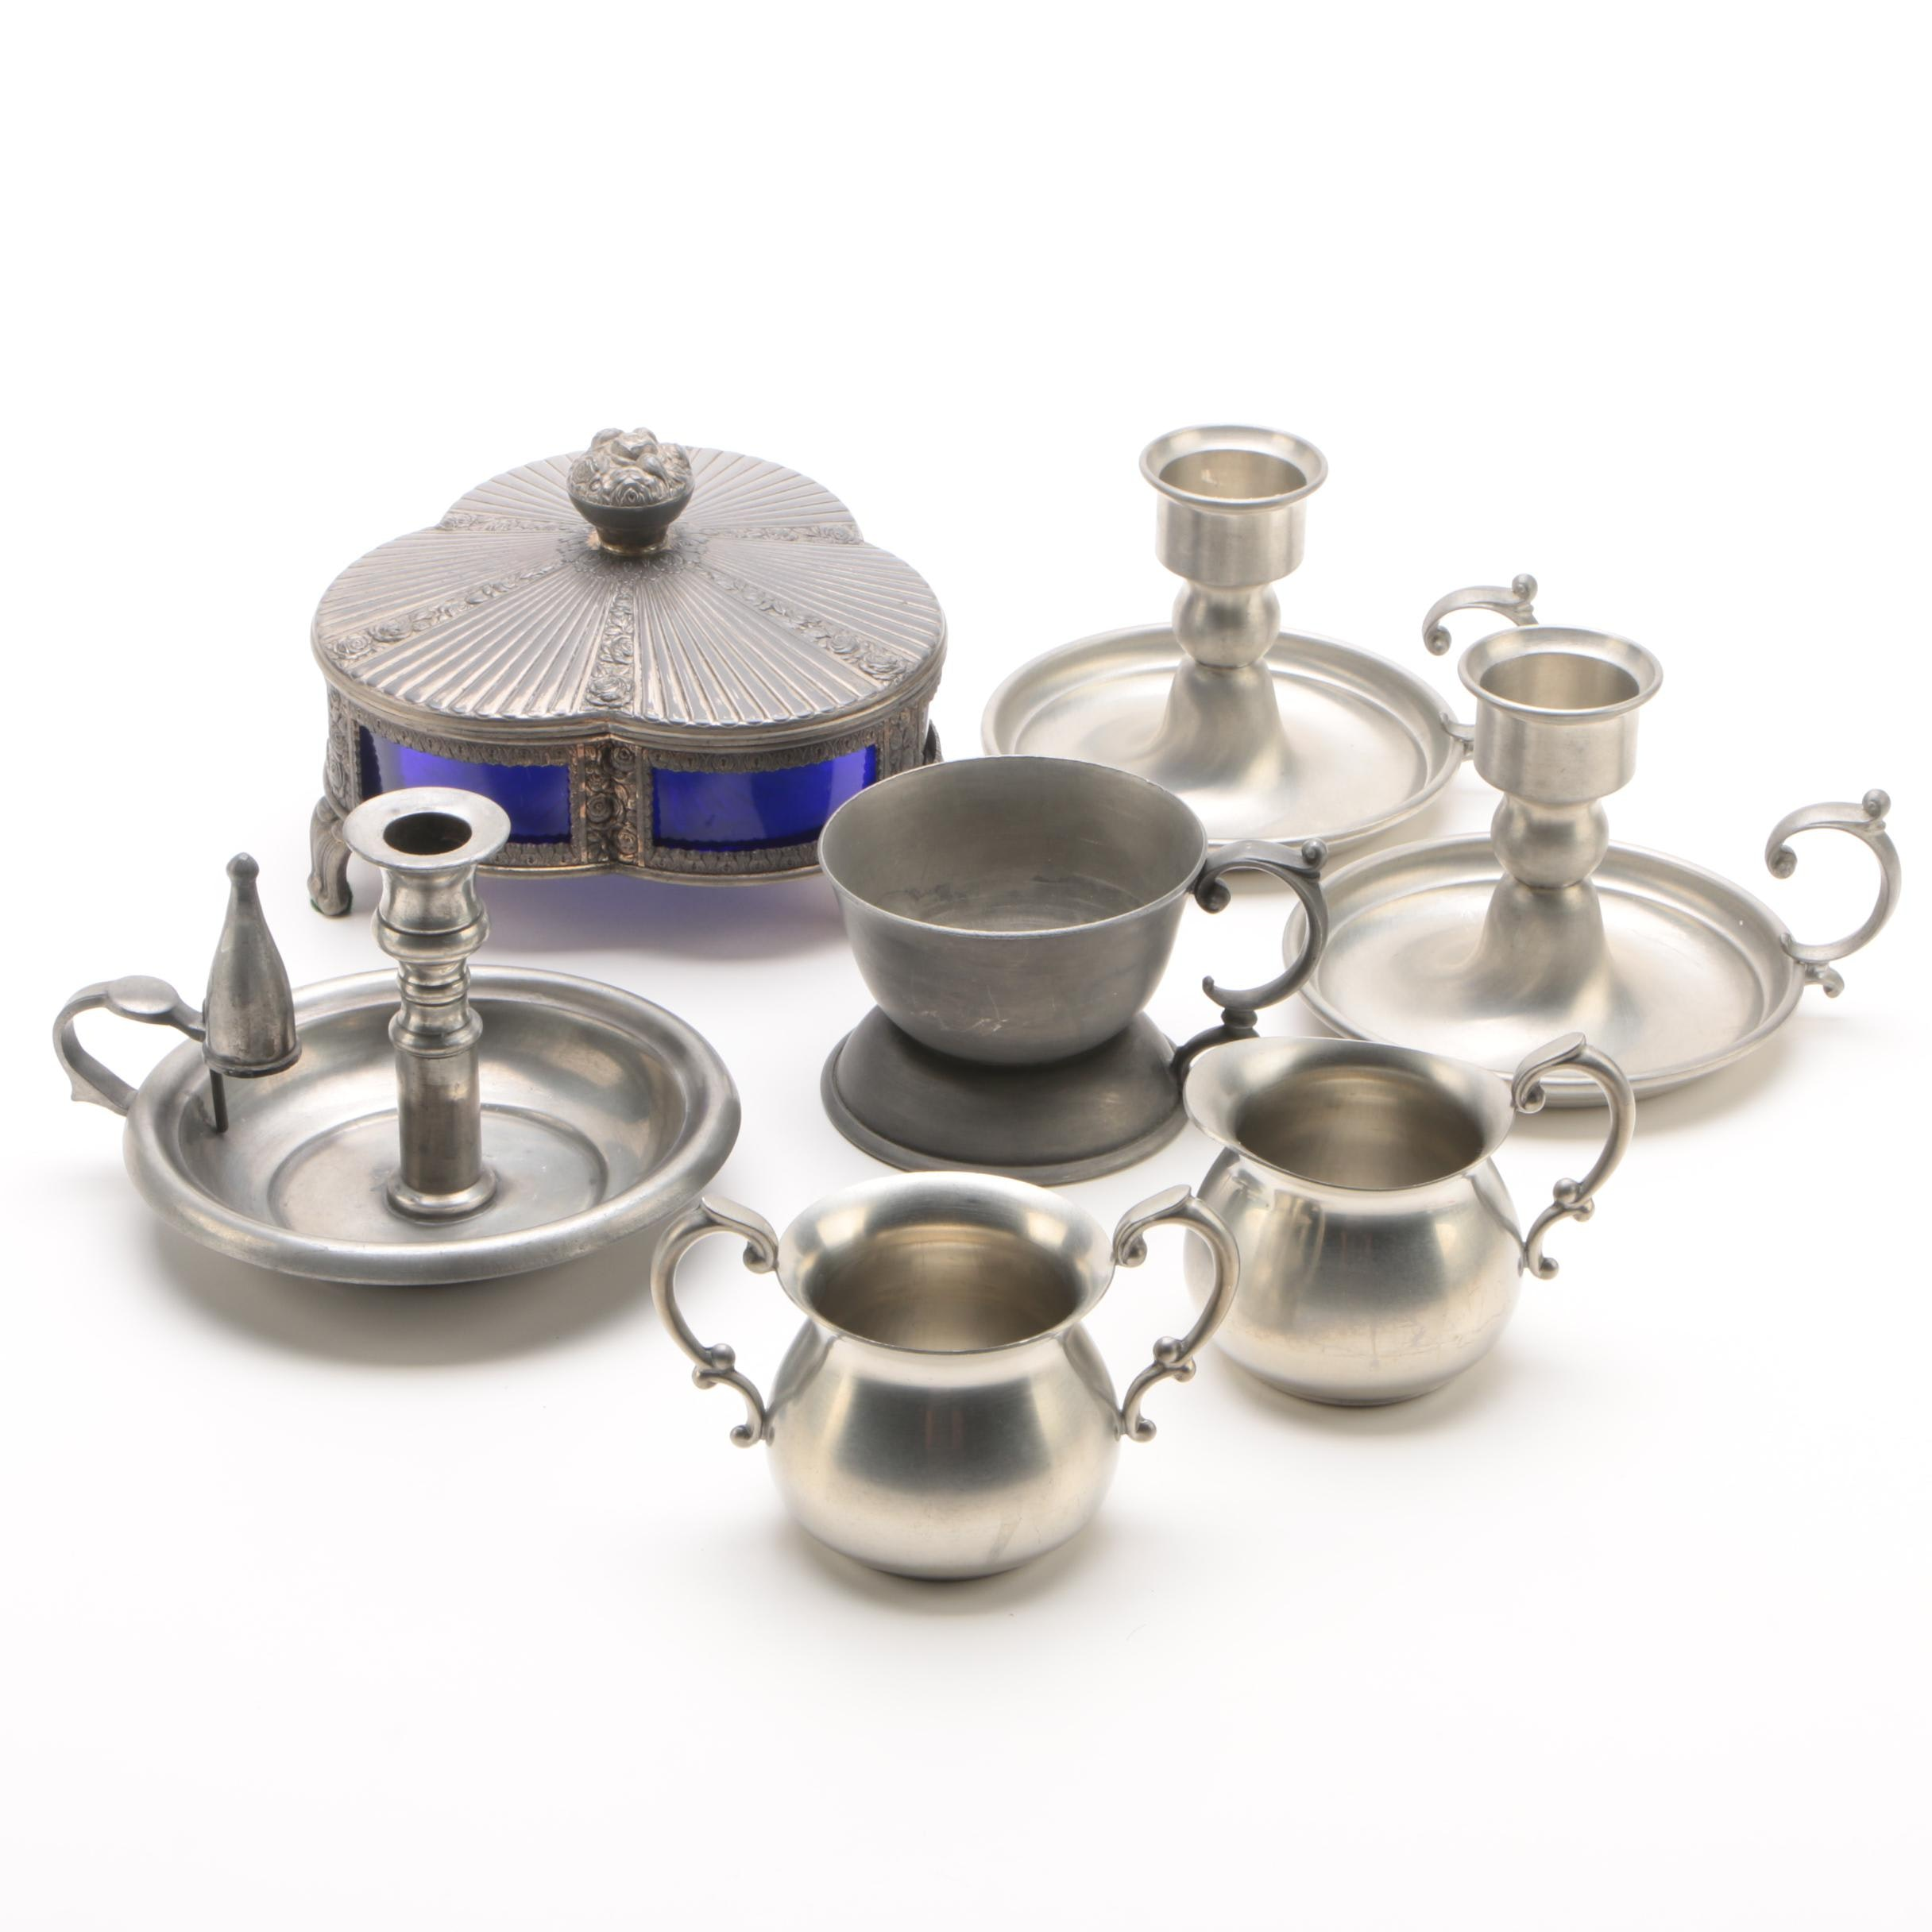 Pewter Serveware and Décor Featuring Empire and Web